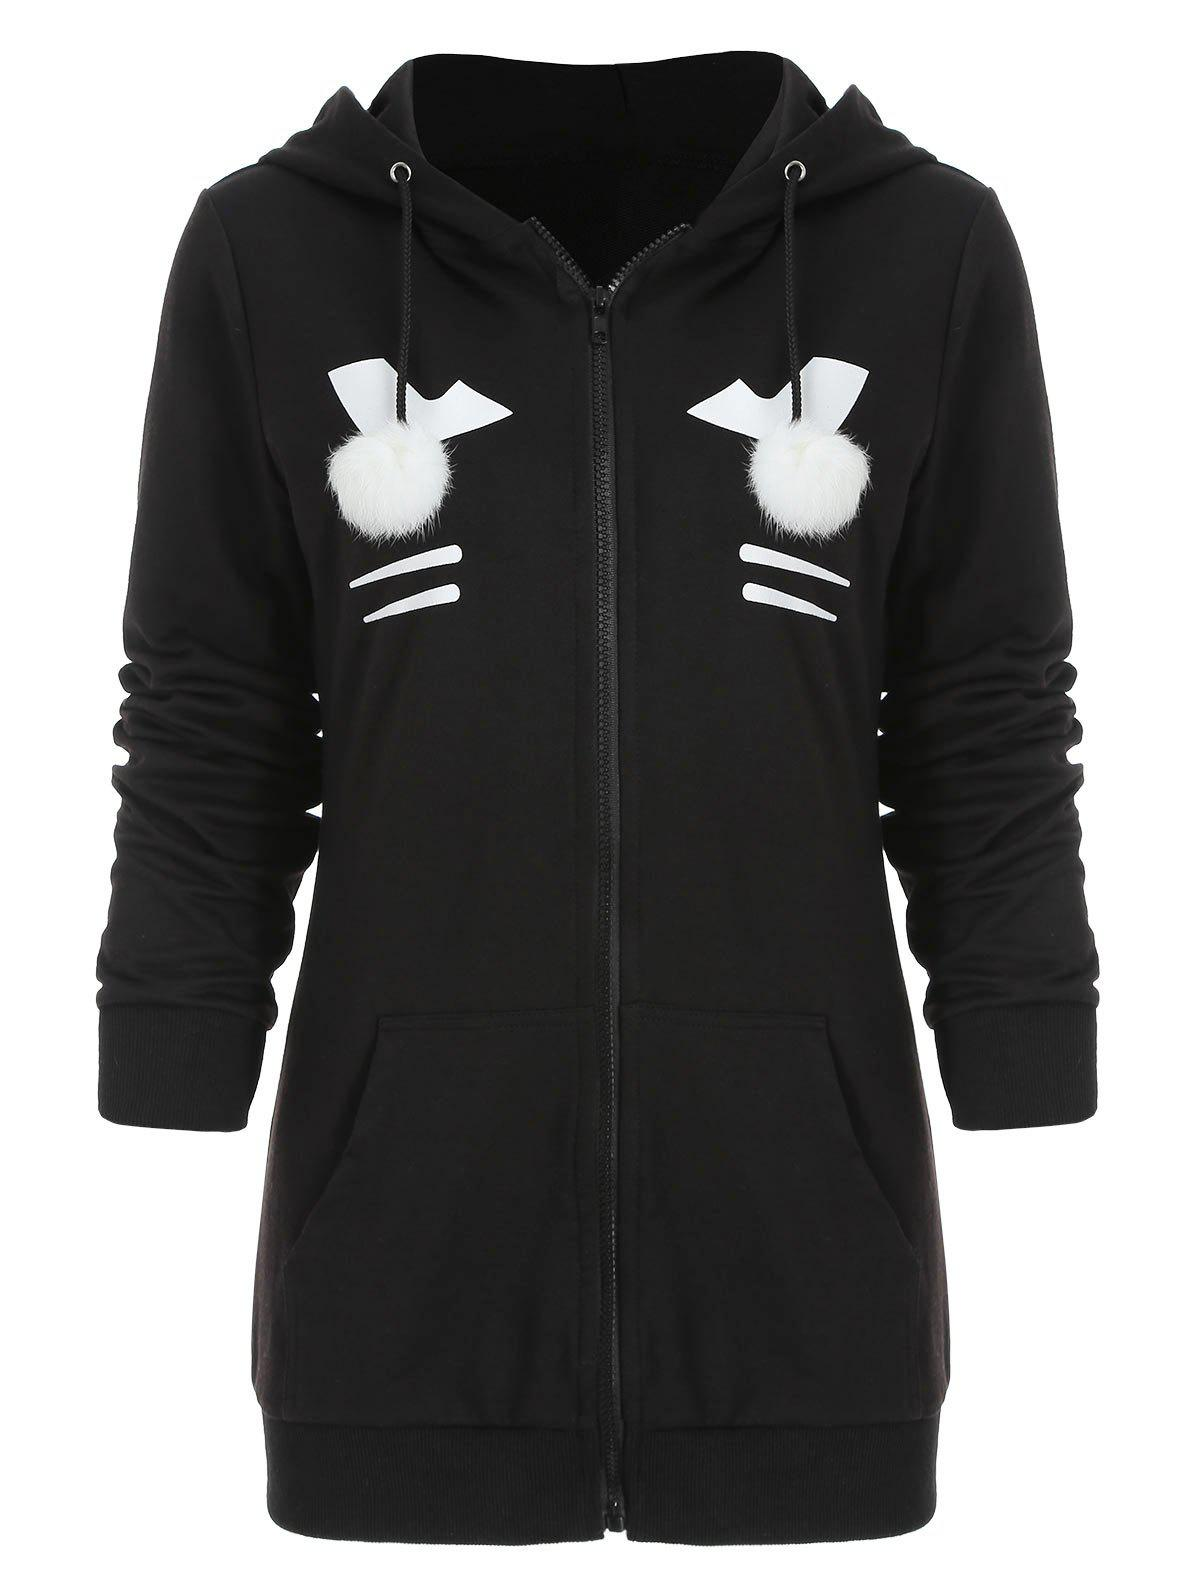 Zip Up Black Cat Hoodie с Pom Ball Чёрный XL